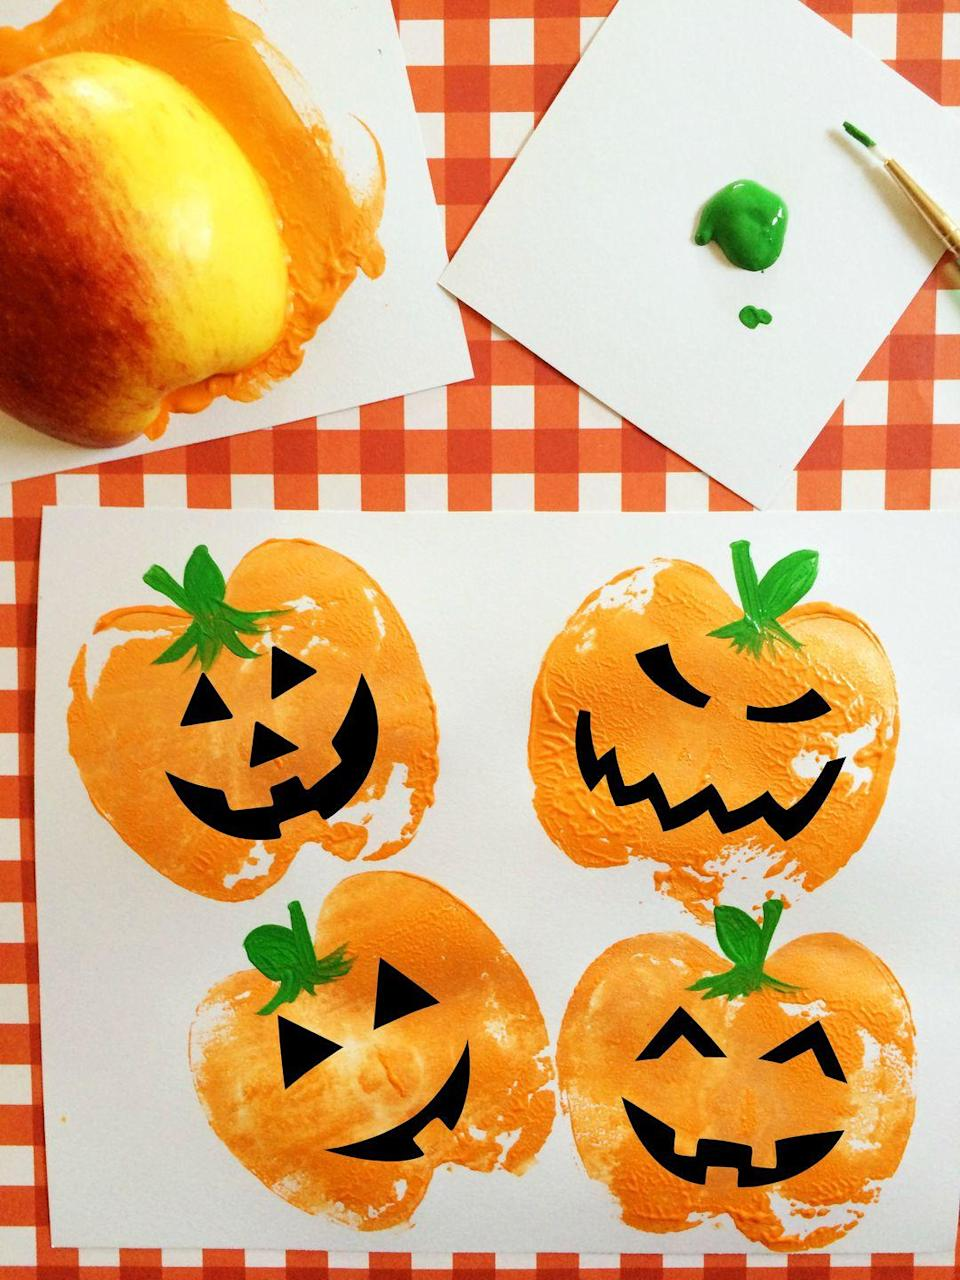 """<p>What are you going to do with all those apples from apple picking? Eat some, back some into a pie, and make sure there's at least one left over to turn into a stamper so you can make fun Jack o' Lantern faces.</p><p><em><a href=""""https://www.frugalmomeh.com/2015/09/pumpkin-apple-stamps.html"""" rel=""""nofollow noopener"""" target=""""_blank"""" data-ylk=""""slk:Get the tutorial at Frugal Momeh »"""" class=""""link rapid-noclick-resp"""">Get the tutorial at Frugal Momeh »</a></em></p>"""